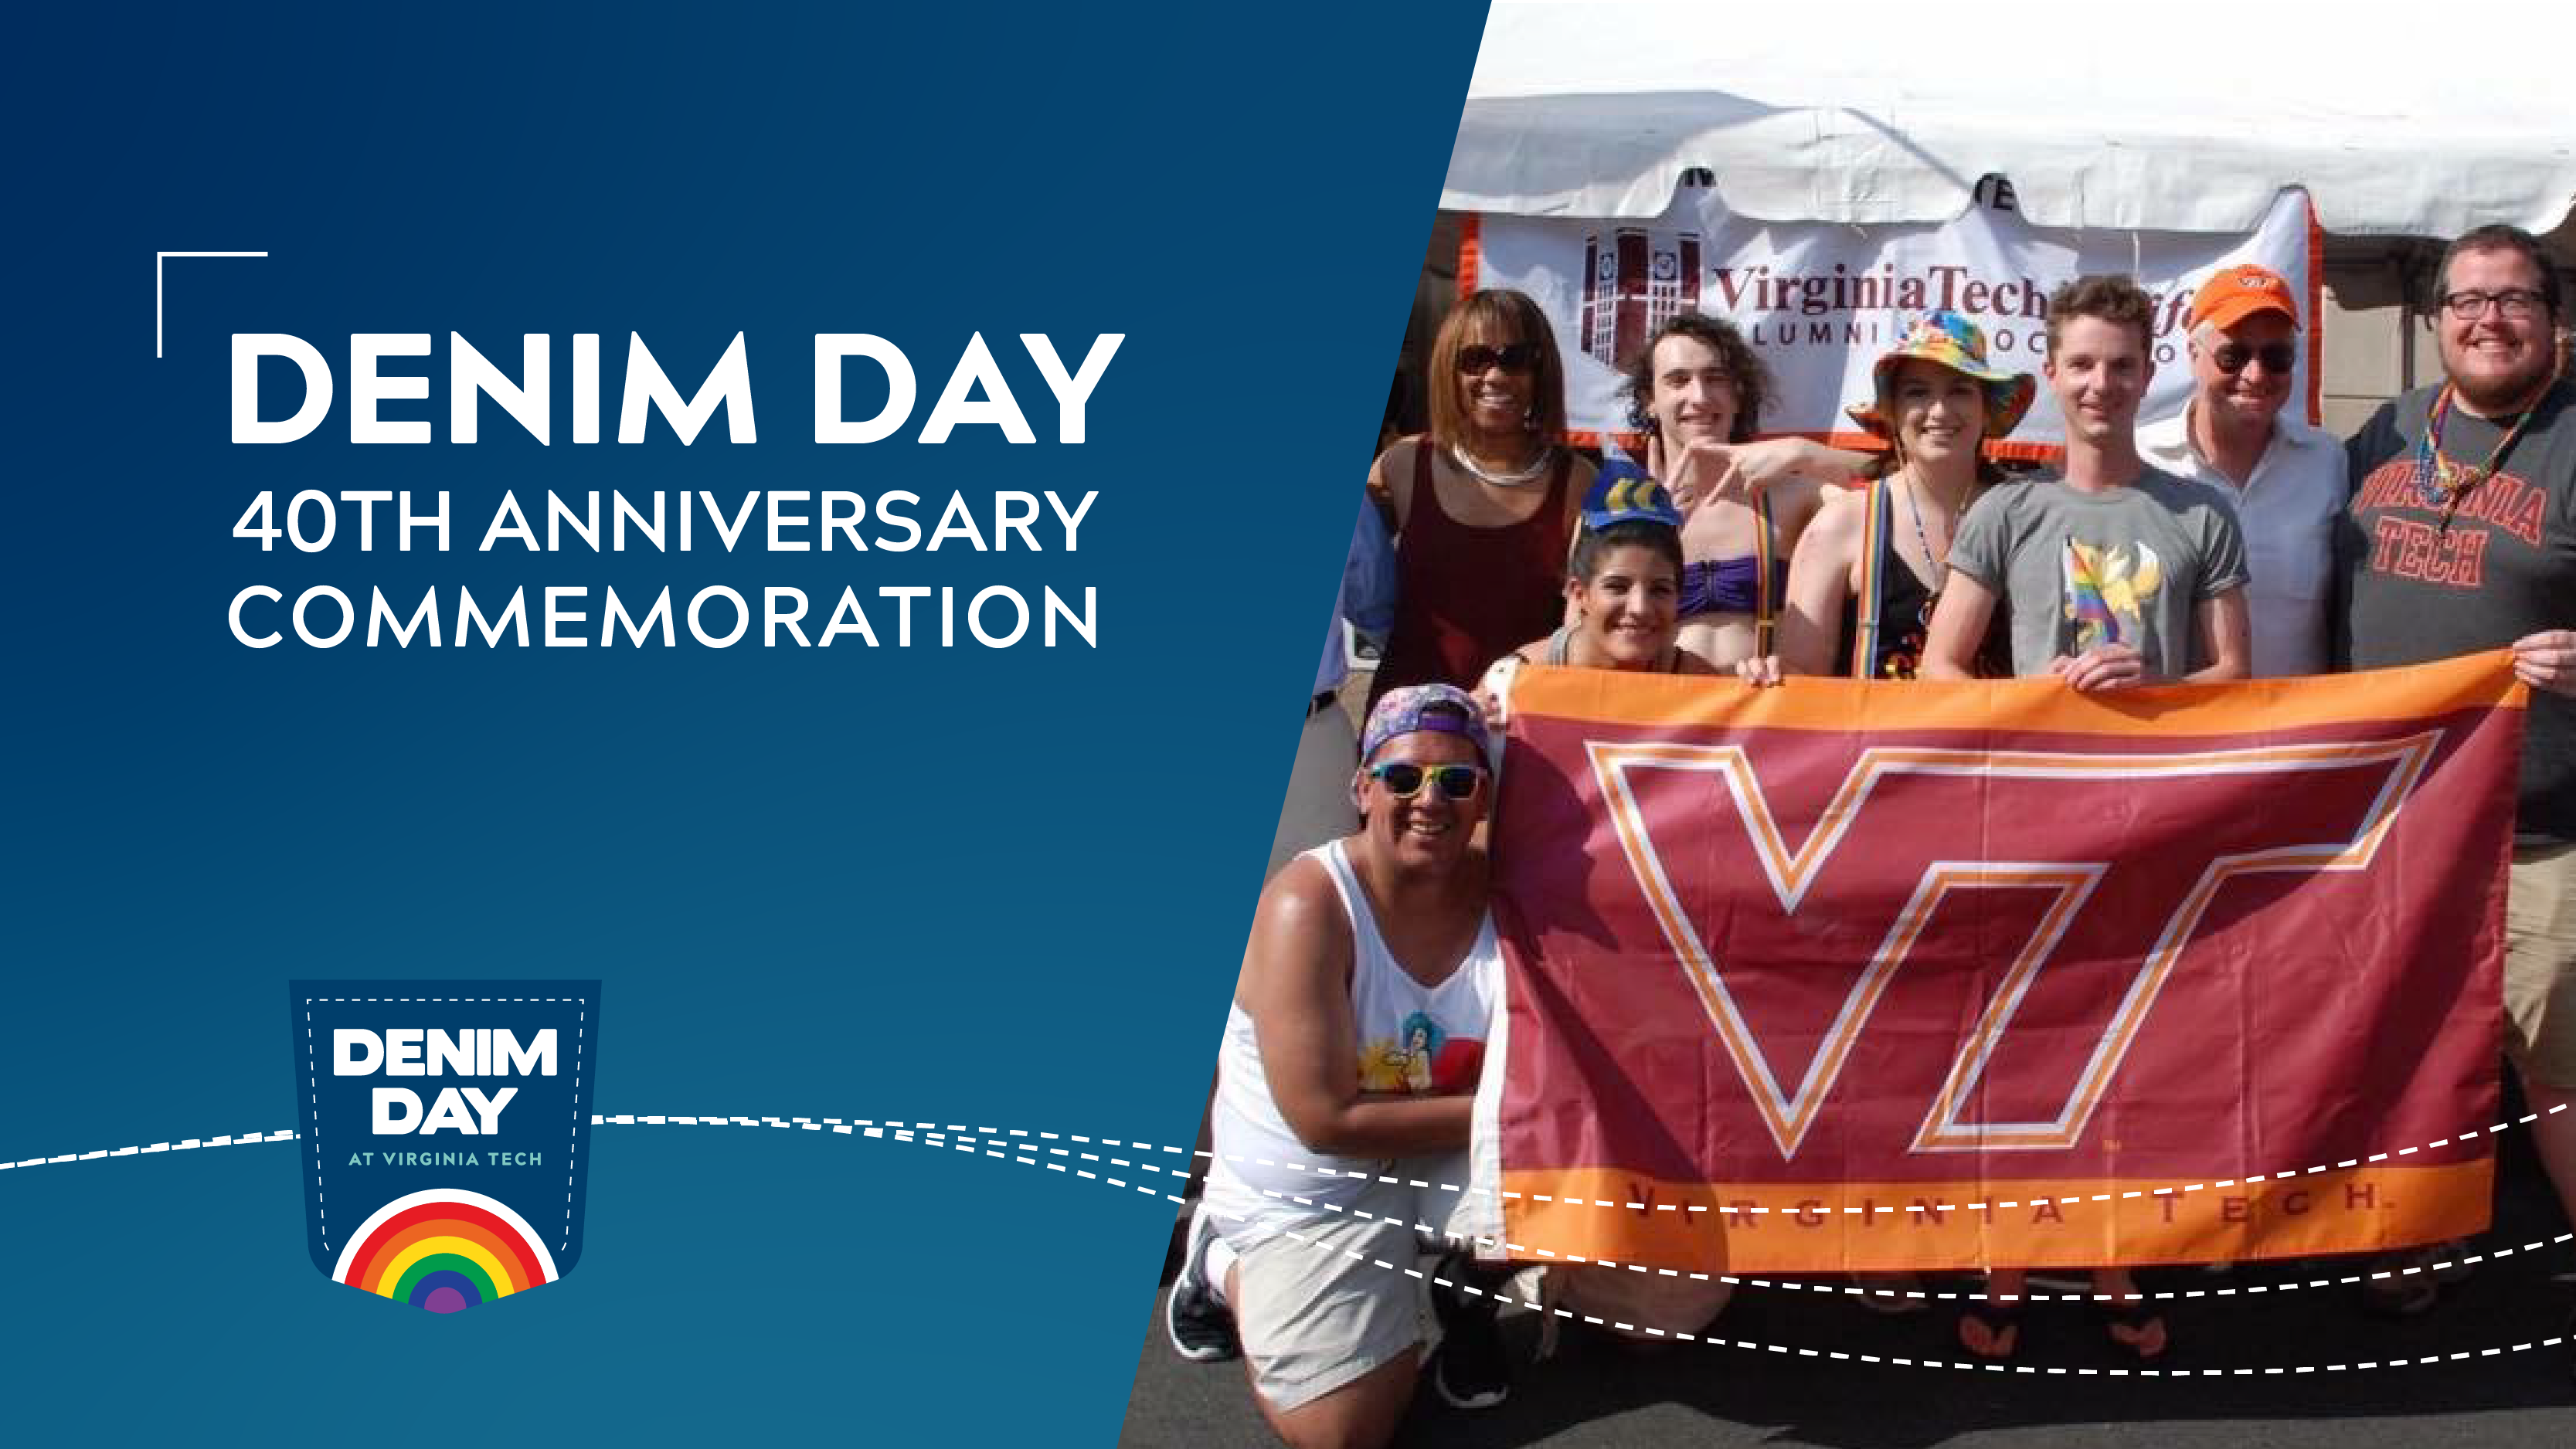 A group holding a Virginia Tech flag on the right. On the left is a blue background with white text reading Denim Day 40th Anniversary Commemoration and a Denim Day at Virginia Tech logo.